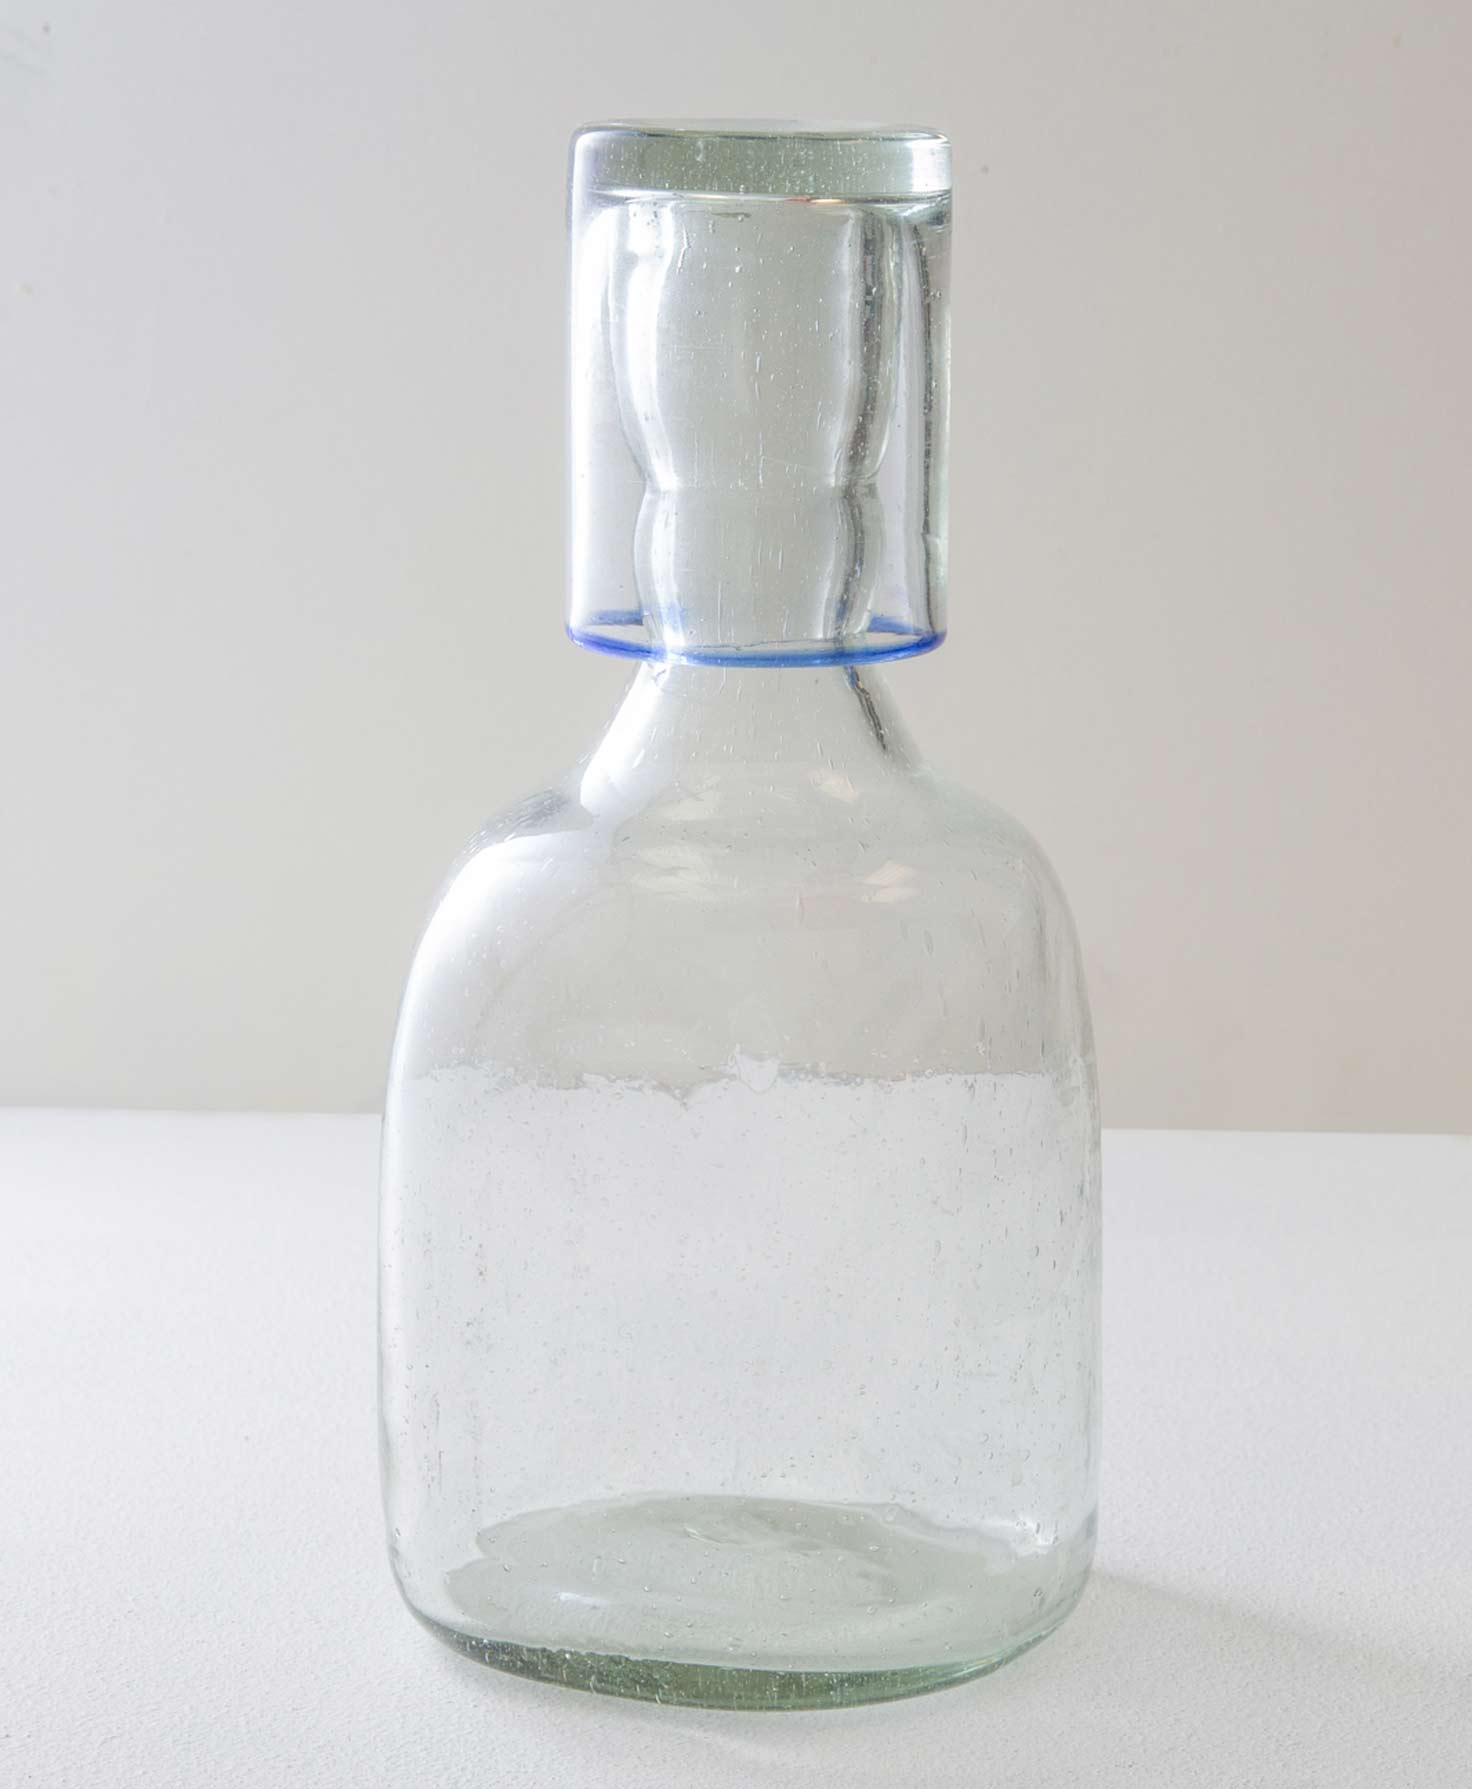 A large clear glass carafe sits upright. The glass has a handblown look with natural air bubbles throughout. The bottom section of the carafe is wide and round. It then tapers in and becomes narrower on top. A small glass rests upside down on the mouth of the carafe. It is the same clear glass as the carafe but with blue detailing along the mouth.